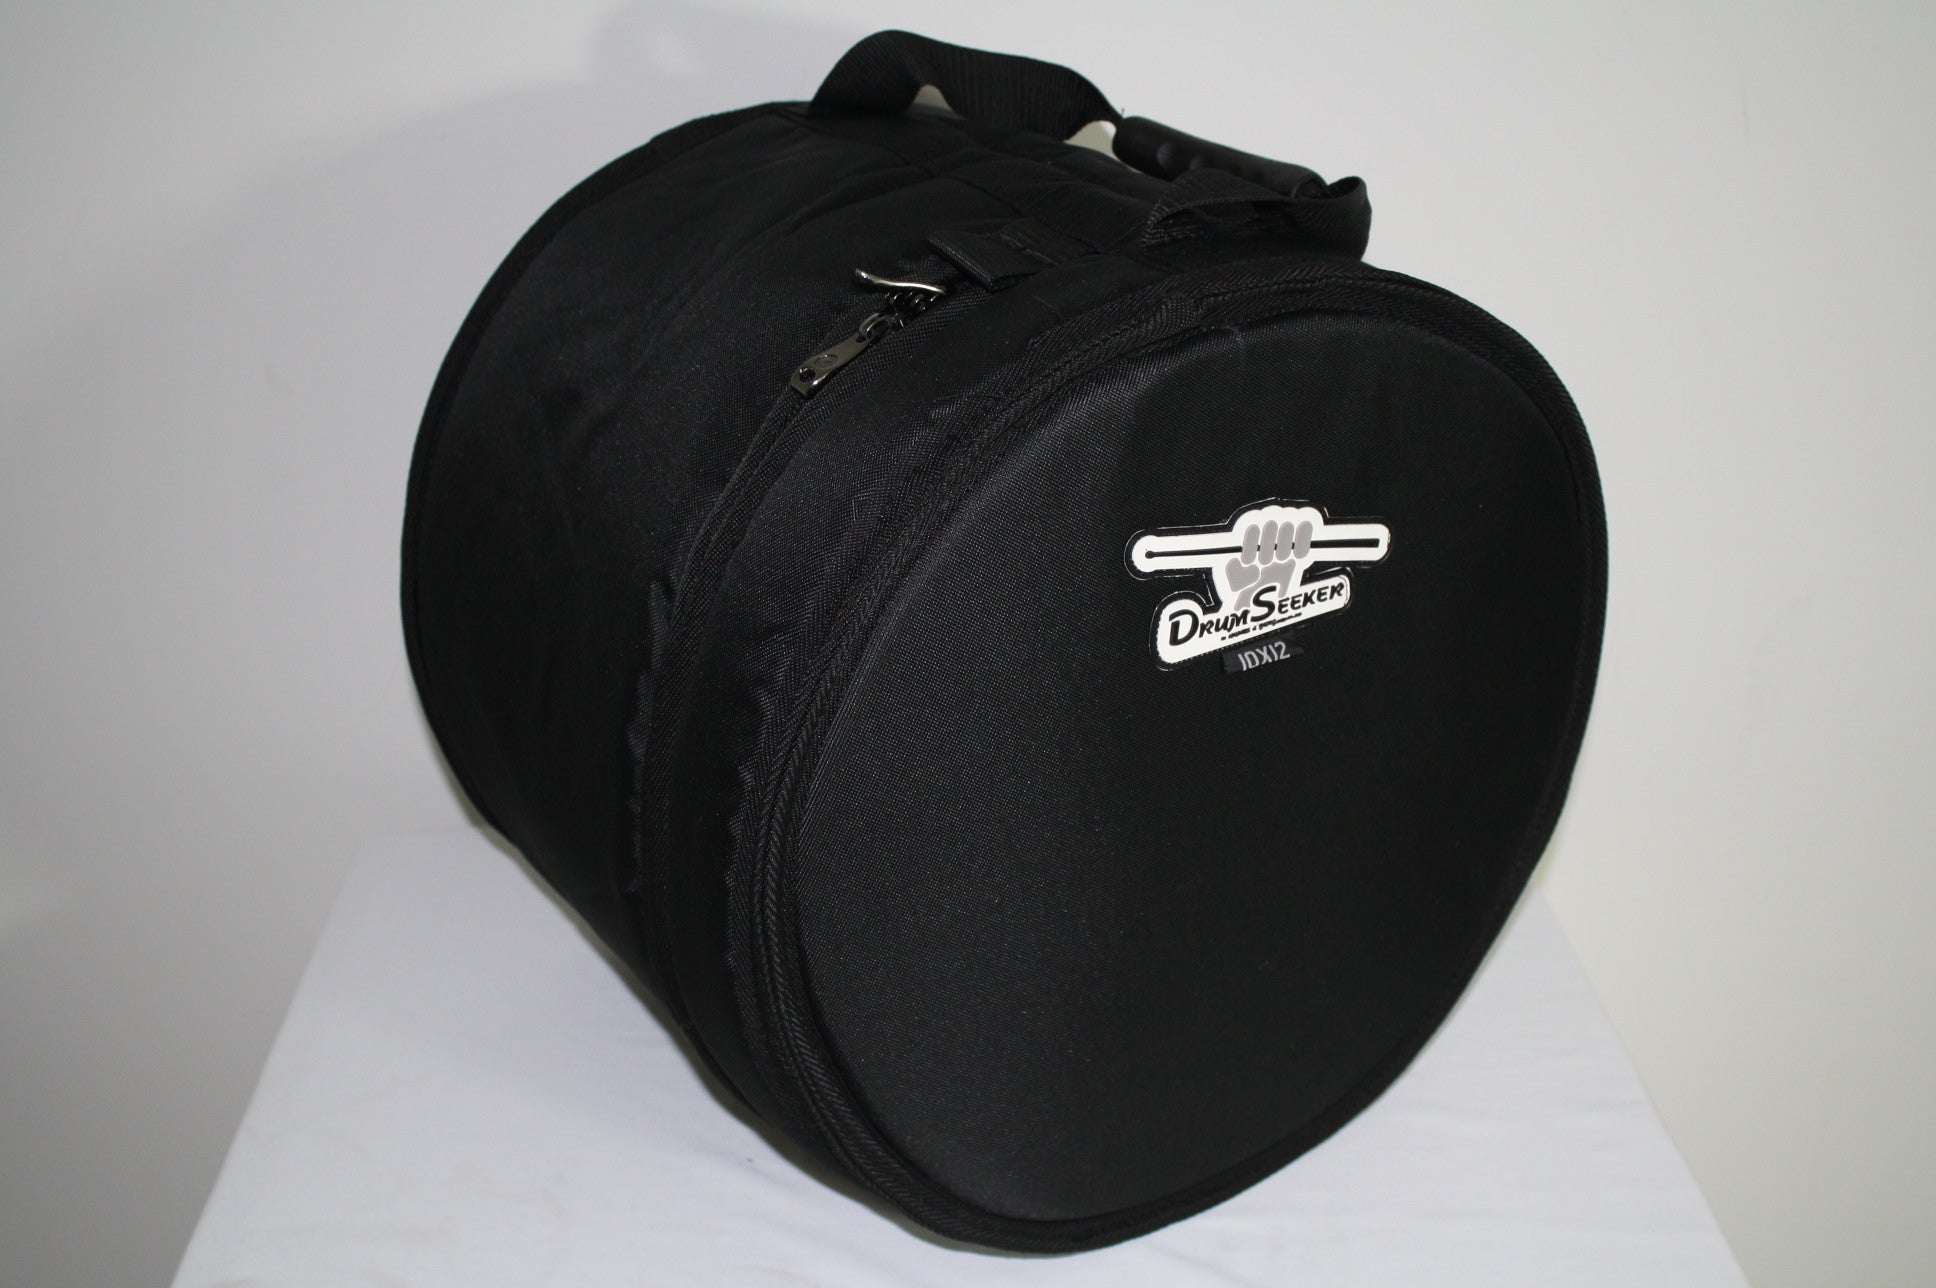 H&B  Drum Seeker 10 x 14 Inches Tom Drum Bag